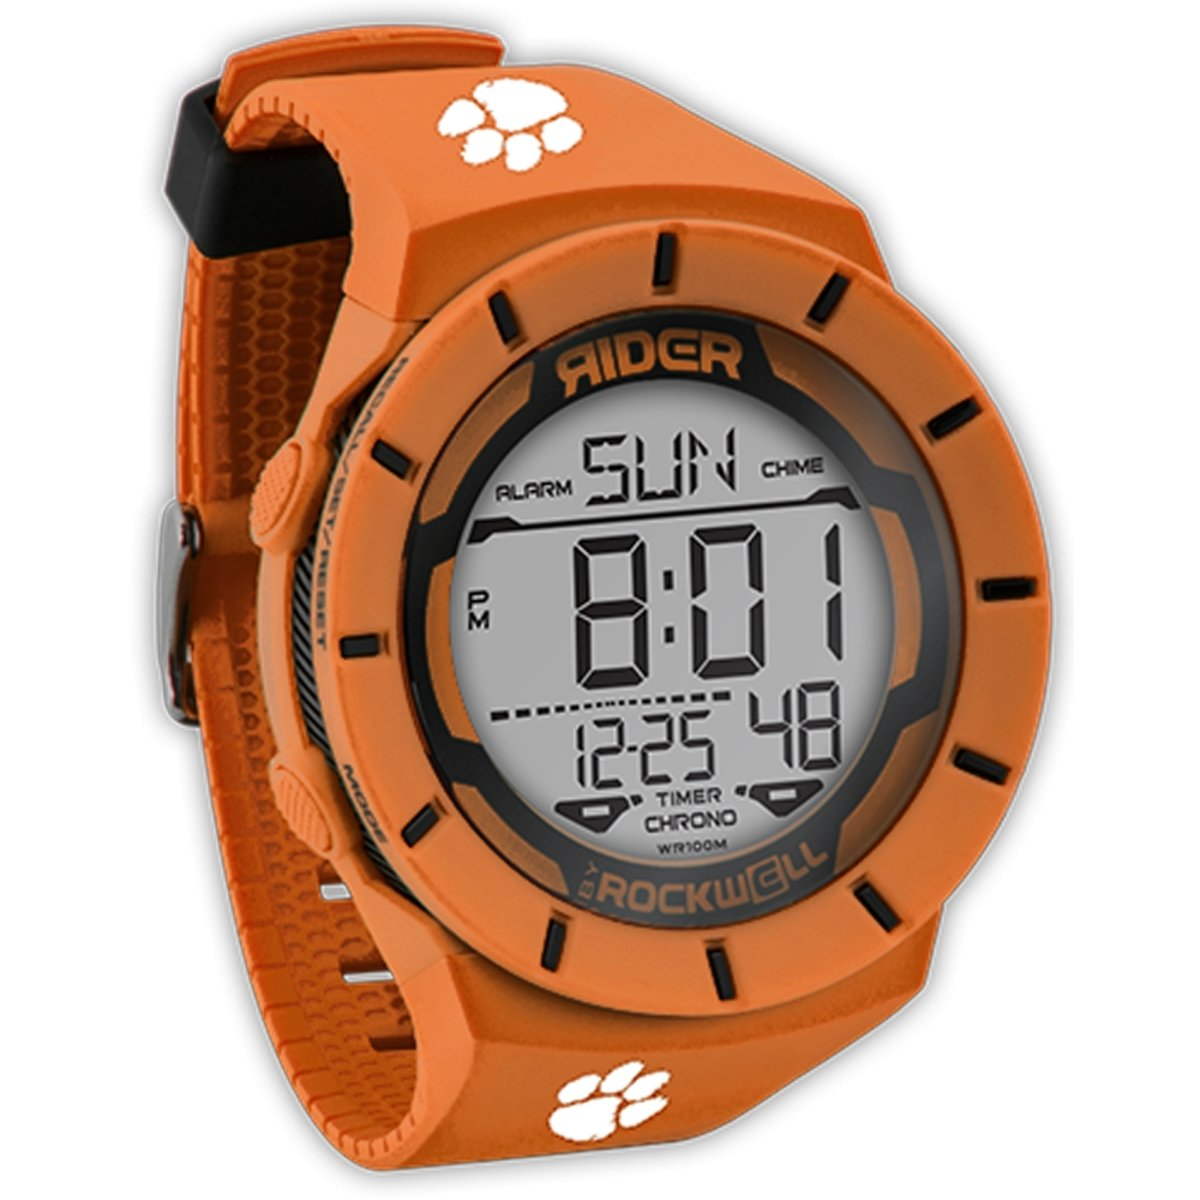 Rockwell Clemson Tigers Coliseum Watch - Mr. Knickerbocker